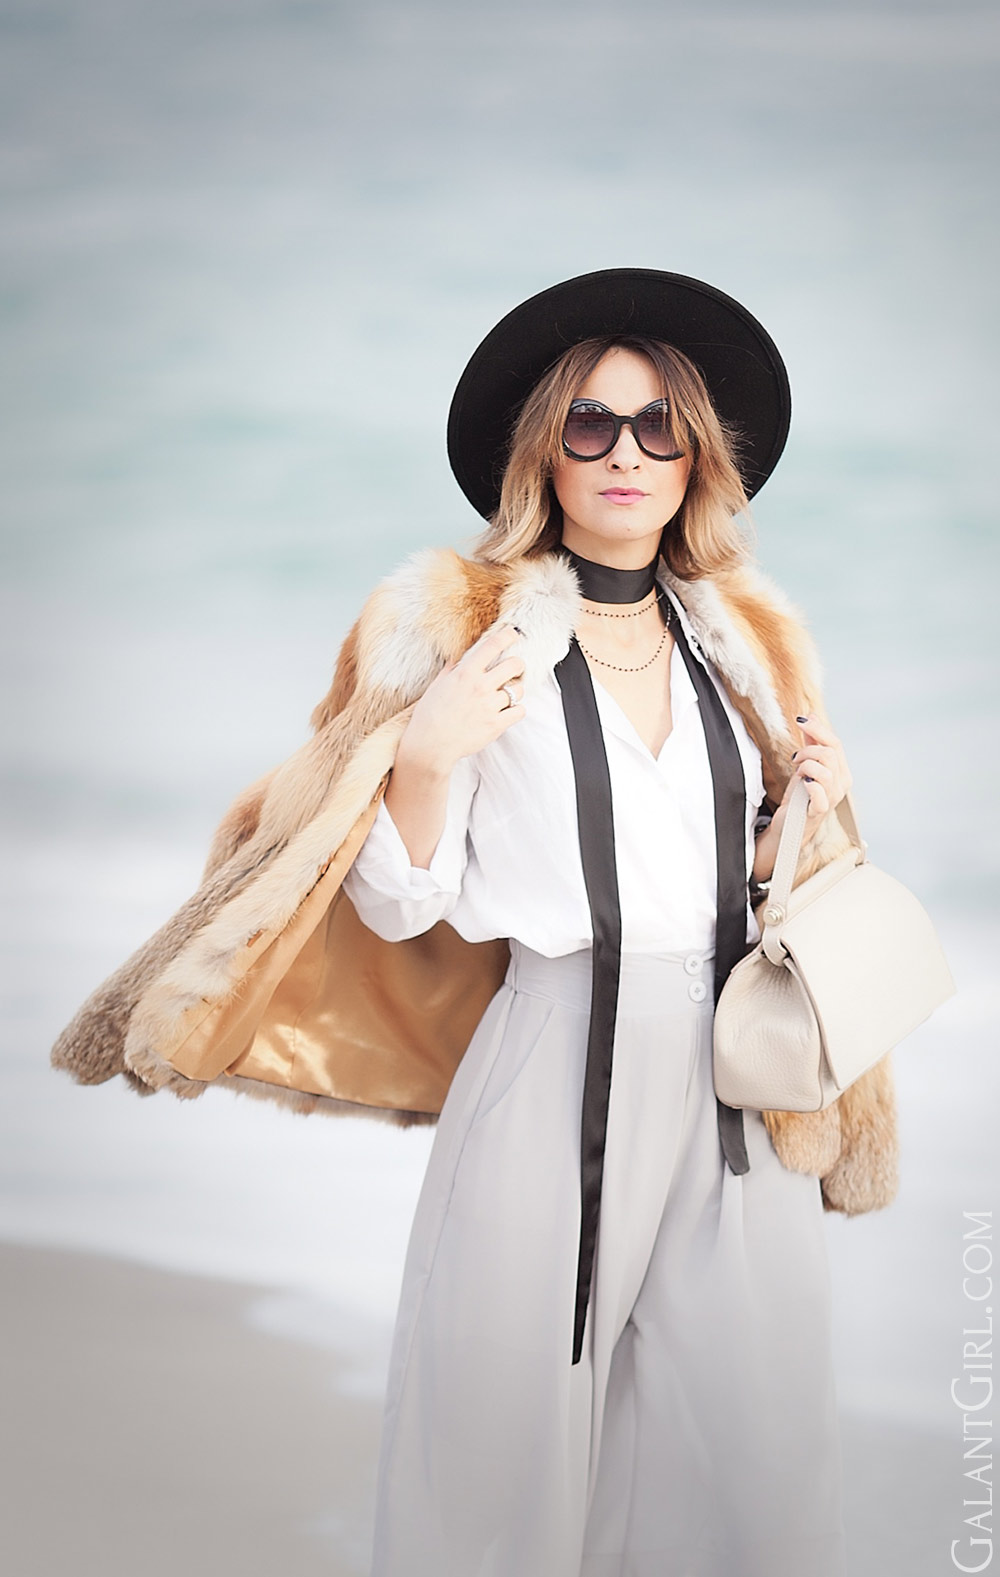 skinny scarf, grey culottes, coccinelle bag and round sunglasses for winter outfit ideas by fashion blogger Galant Girl